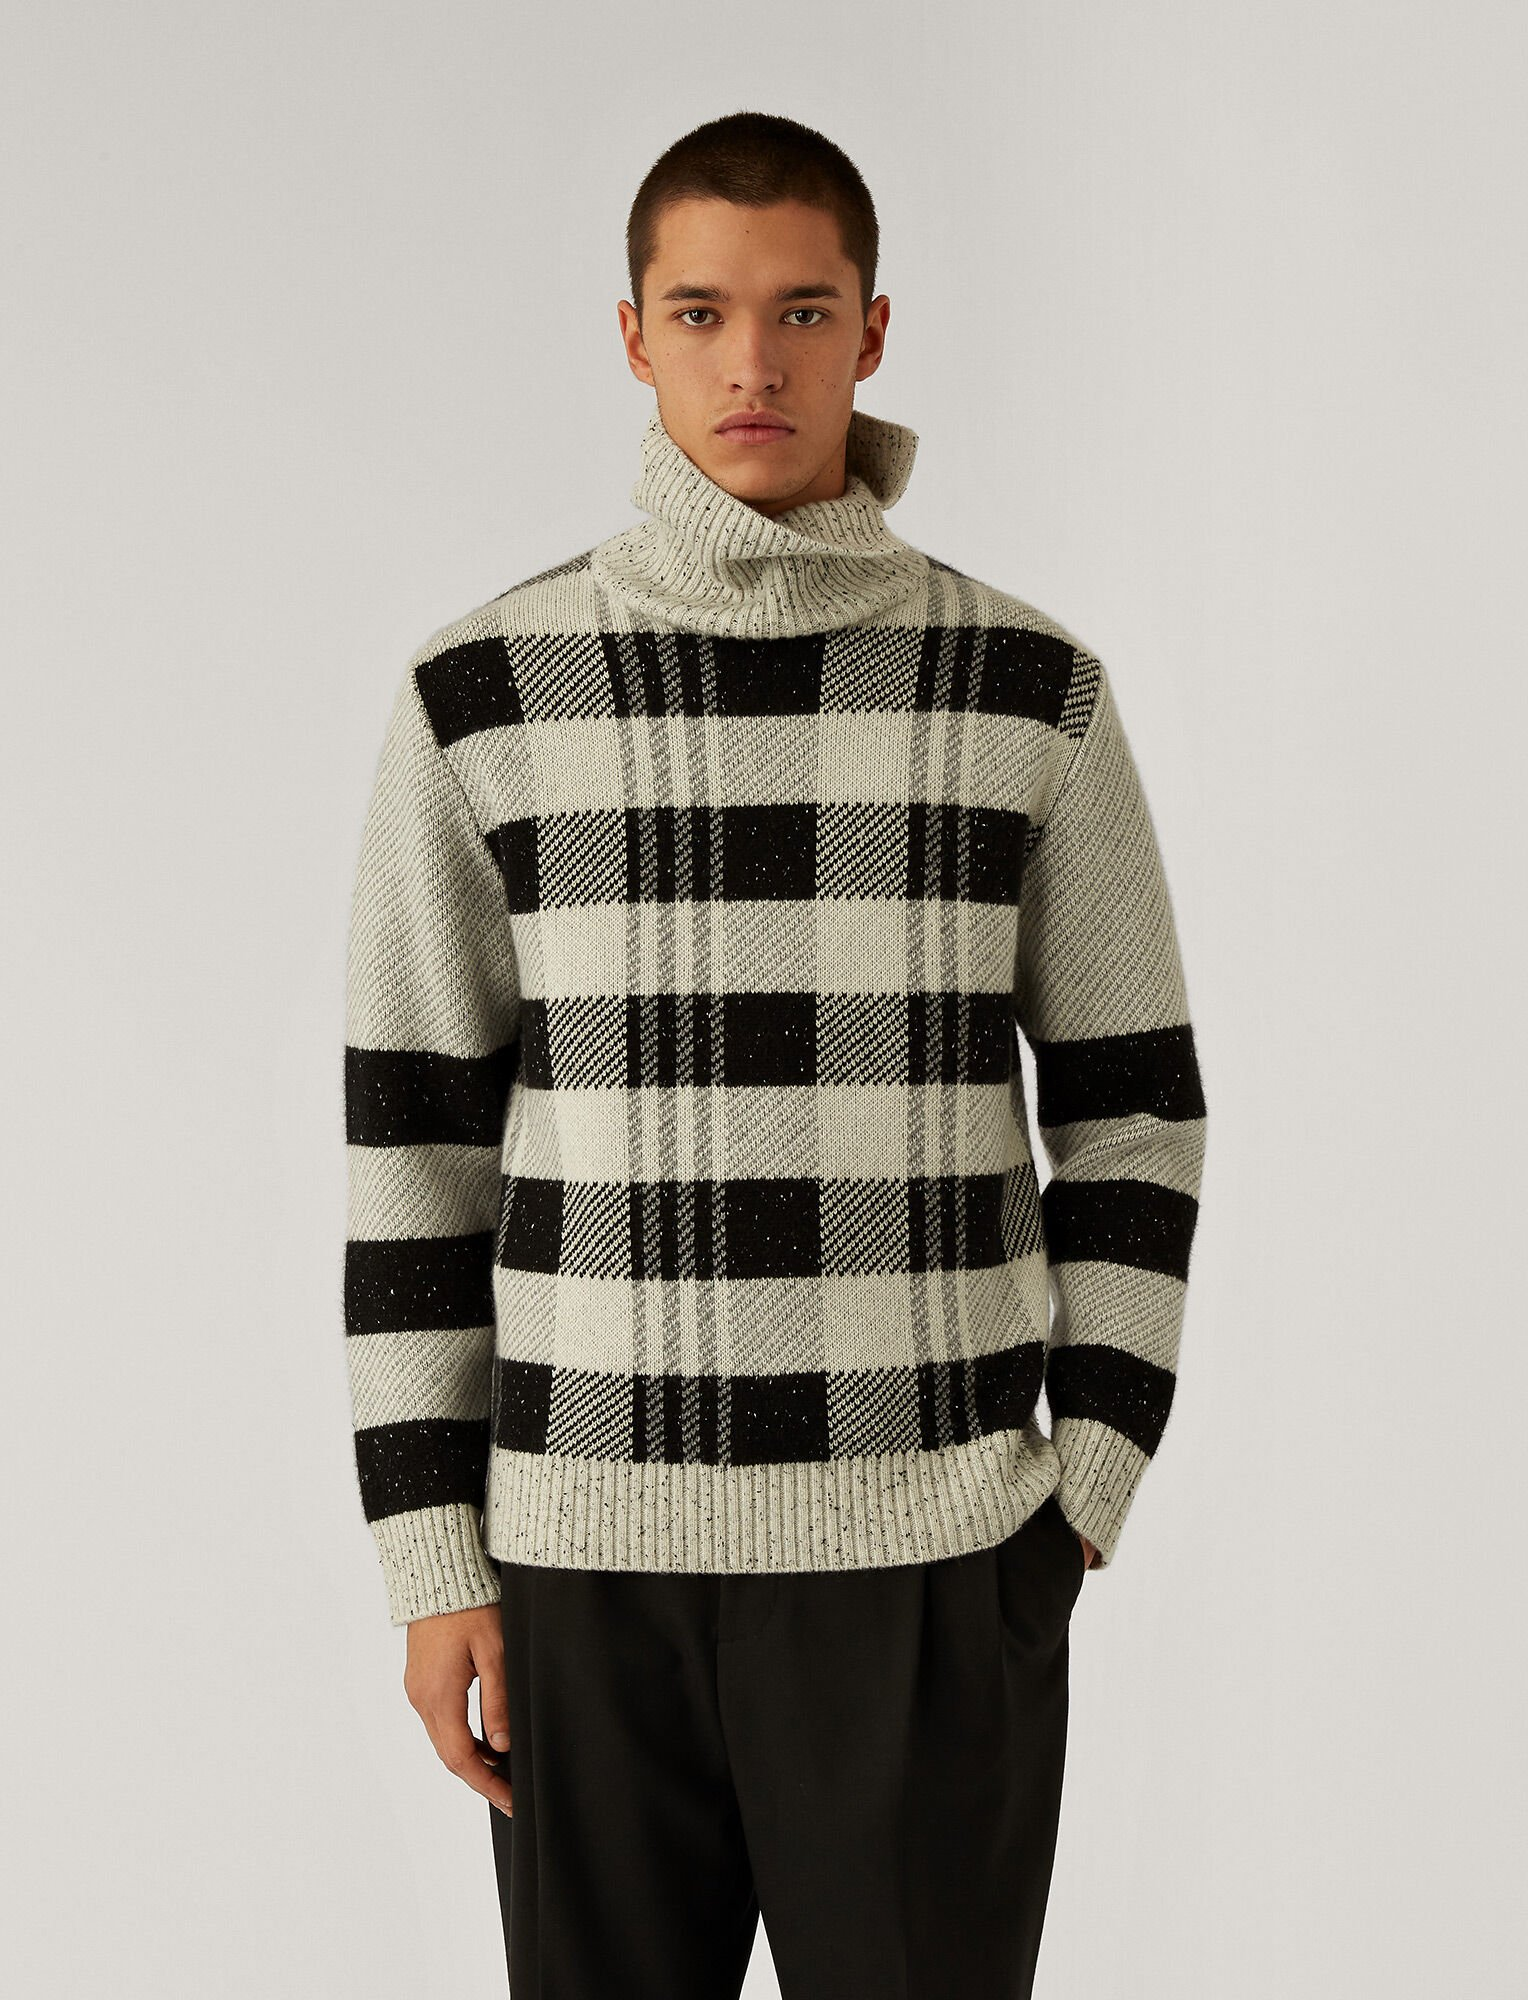 Joseph, High Neck Royal Check Knit, in Black